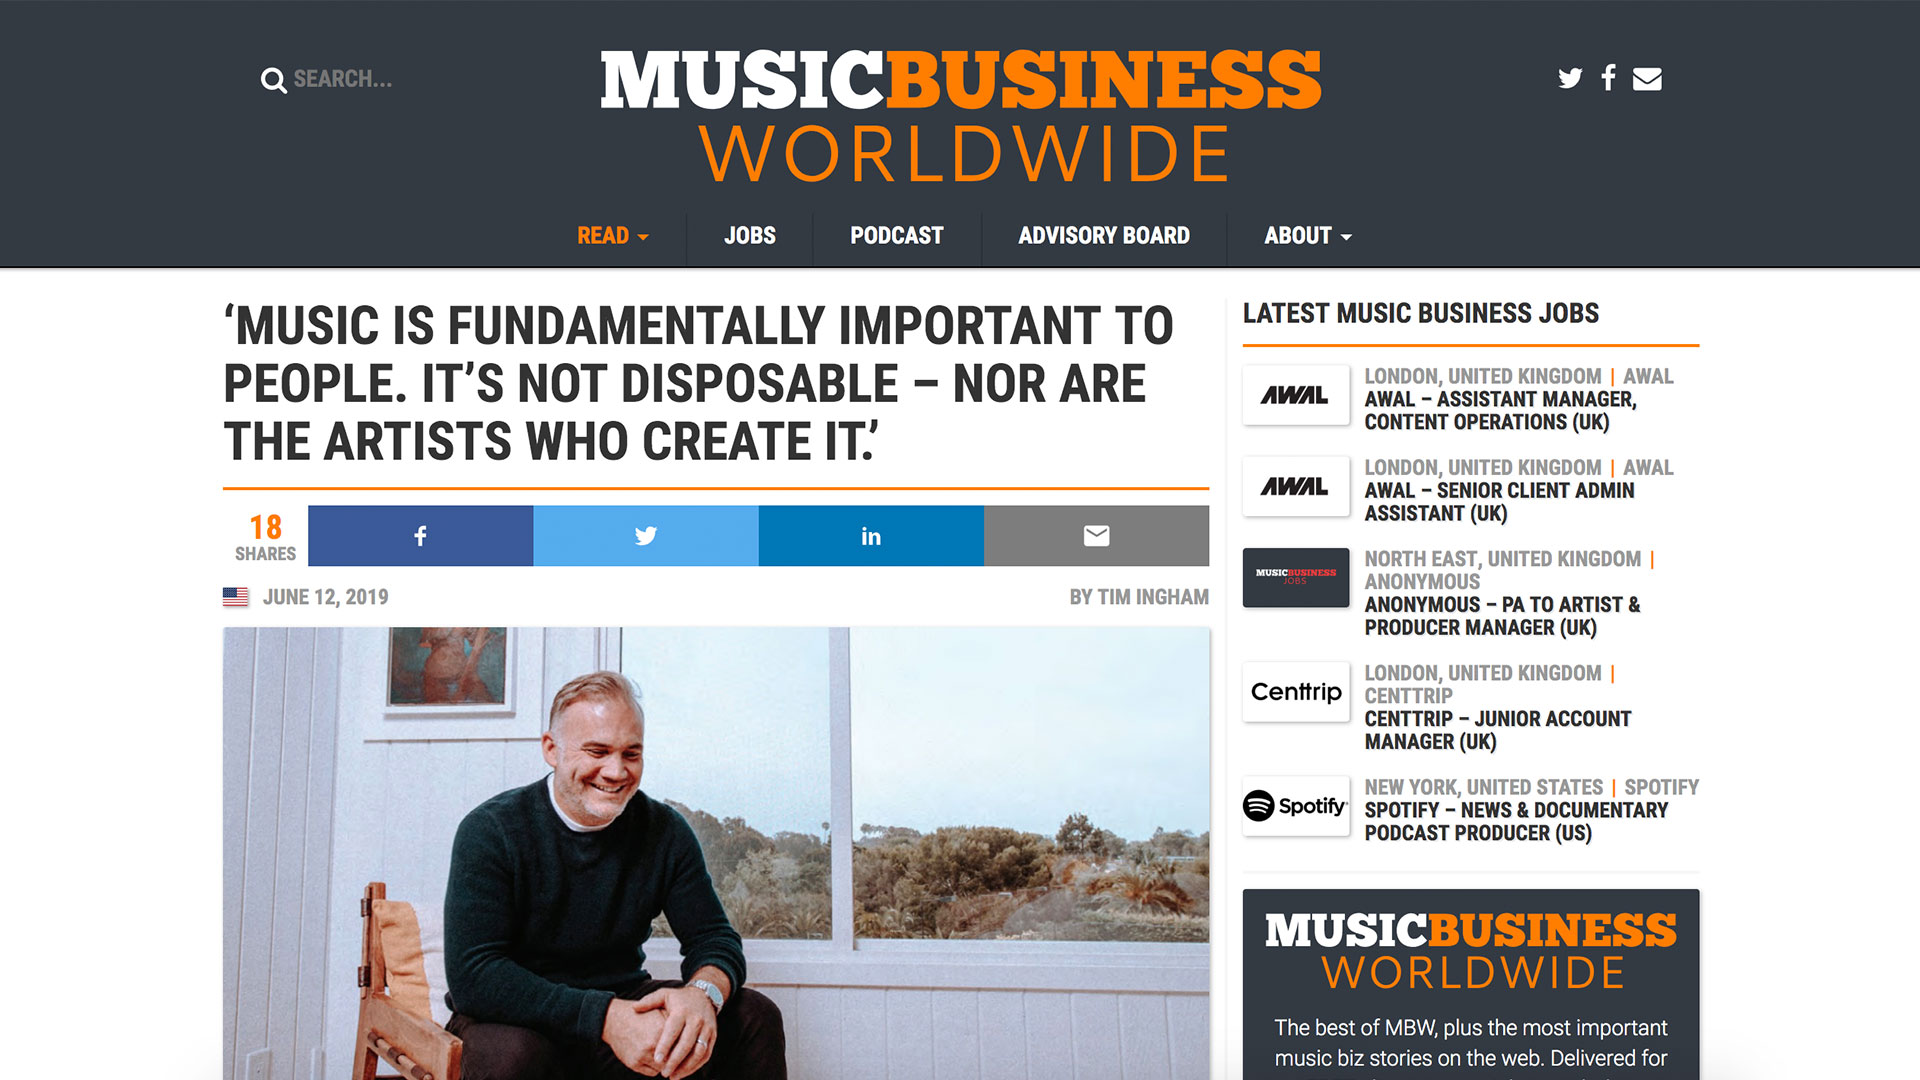 Fairness Rocks News 'MUSIC IS FUNDAMENTALLY IMPORTANT TO PEOPLE. IT'S NOT DISPOSABLE – NOR ARE THE ARTISTS WHO CREATE IT.'